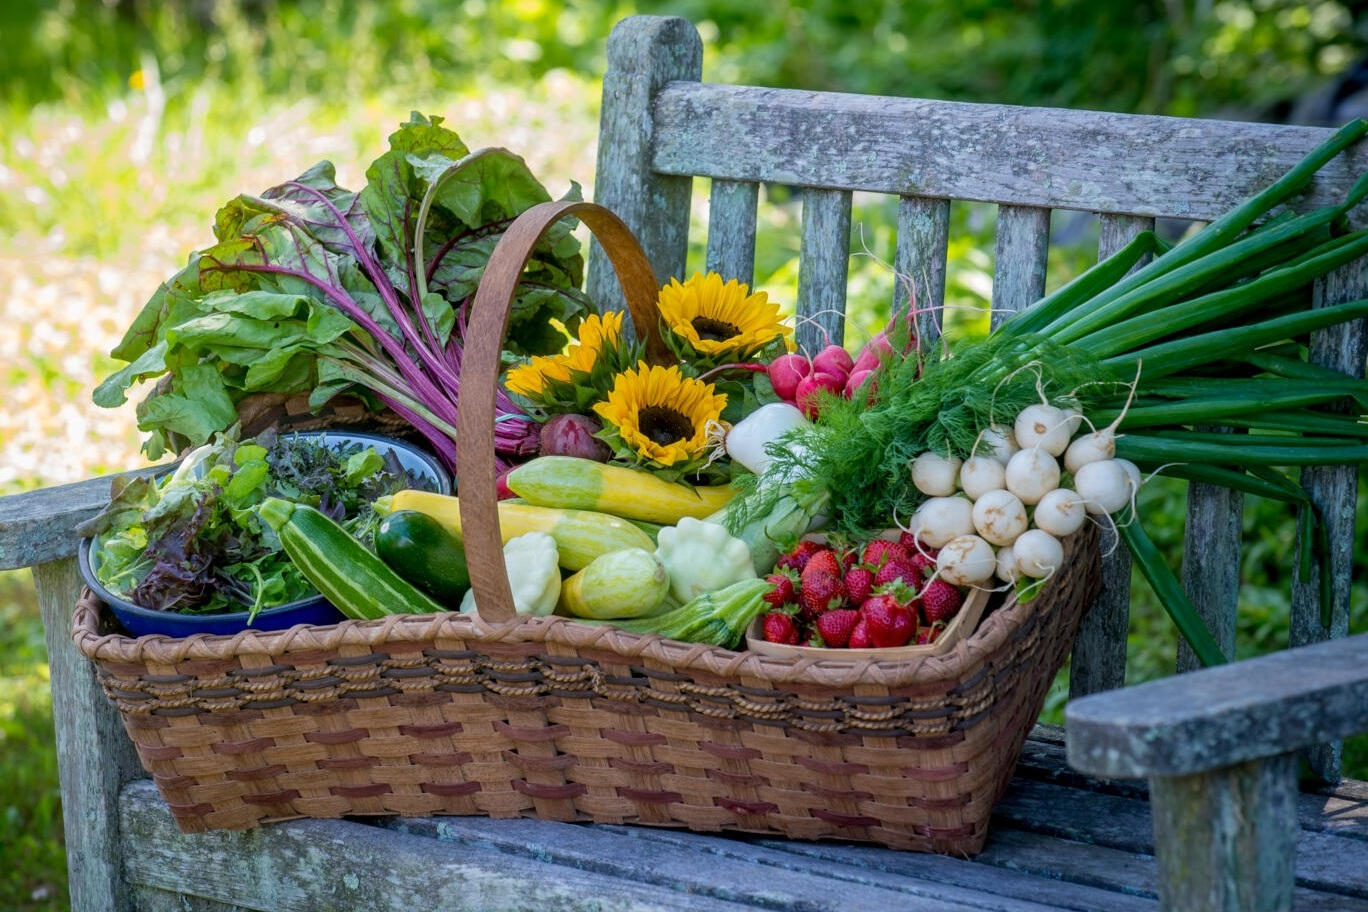 basket of homegrown produce on a weathered garden bench